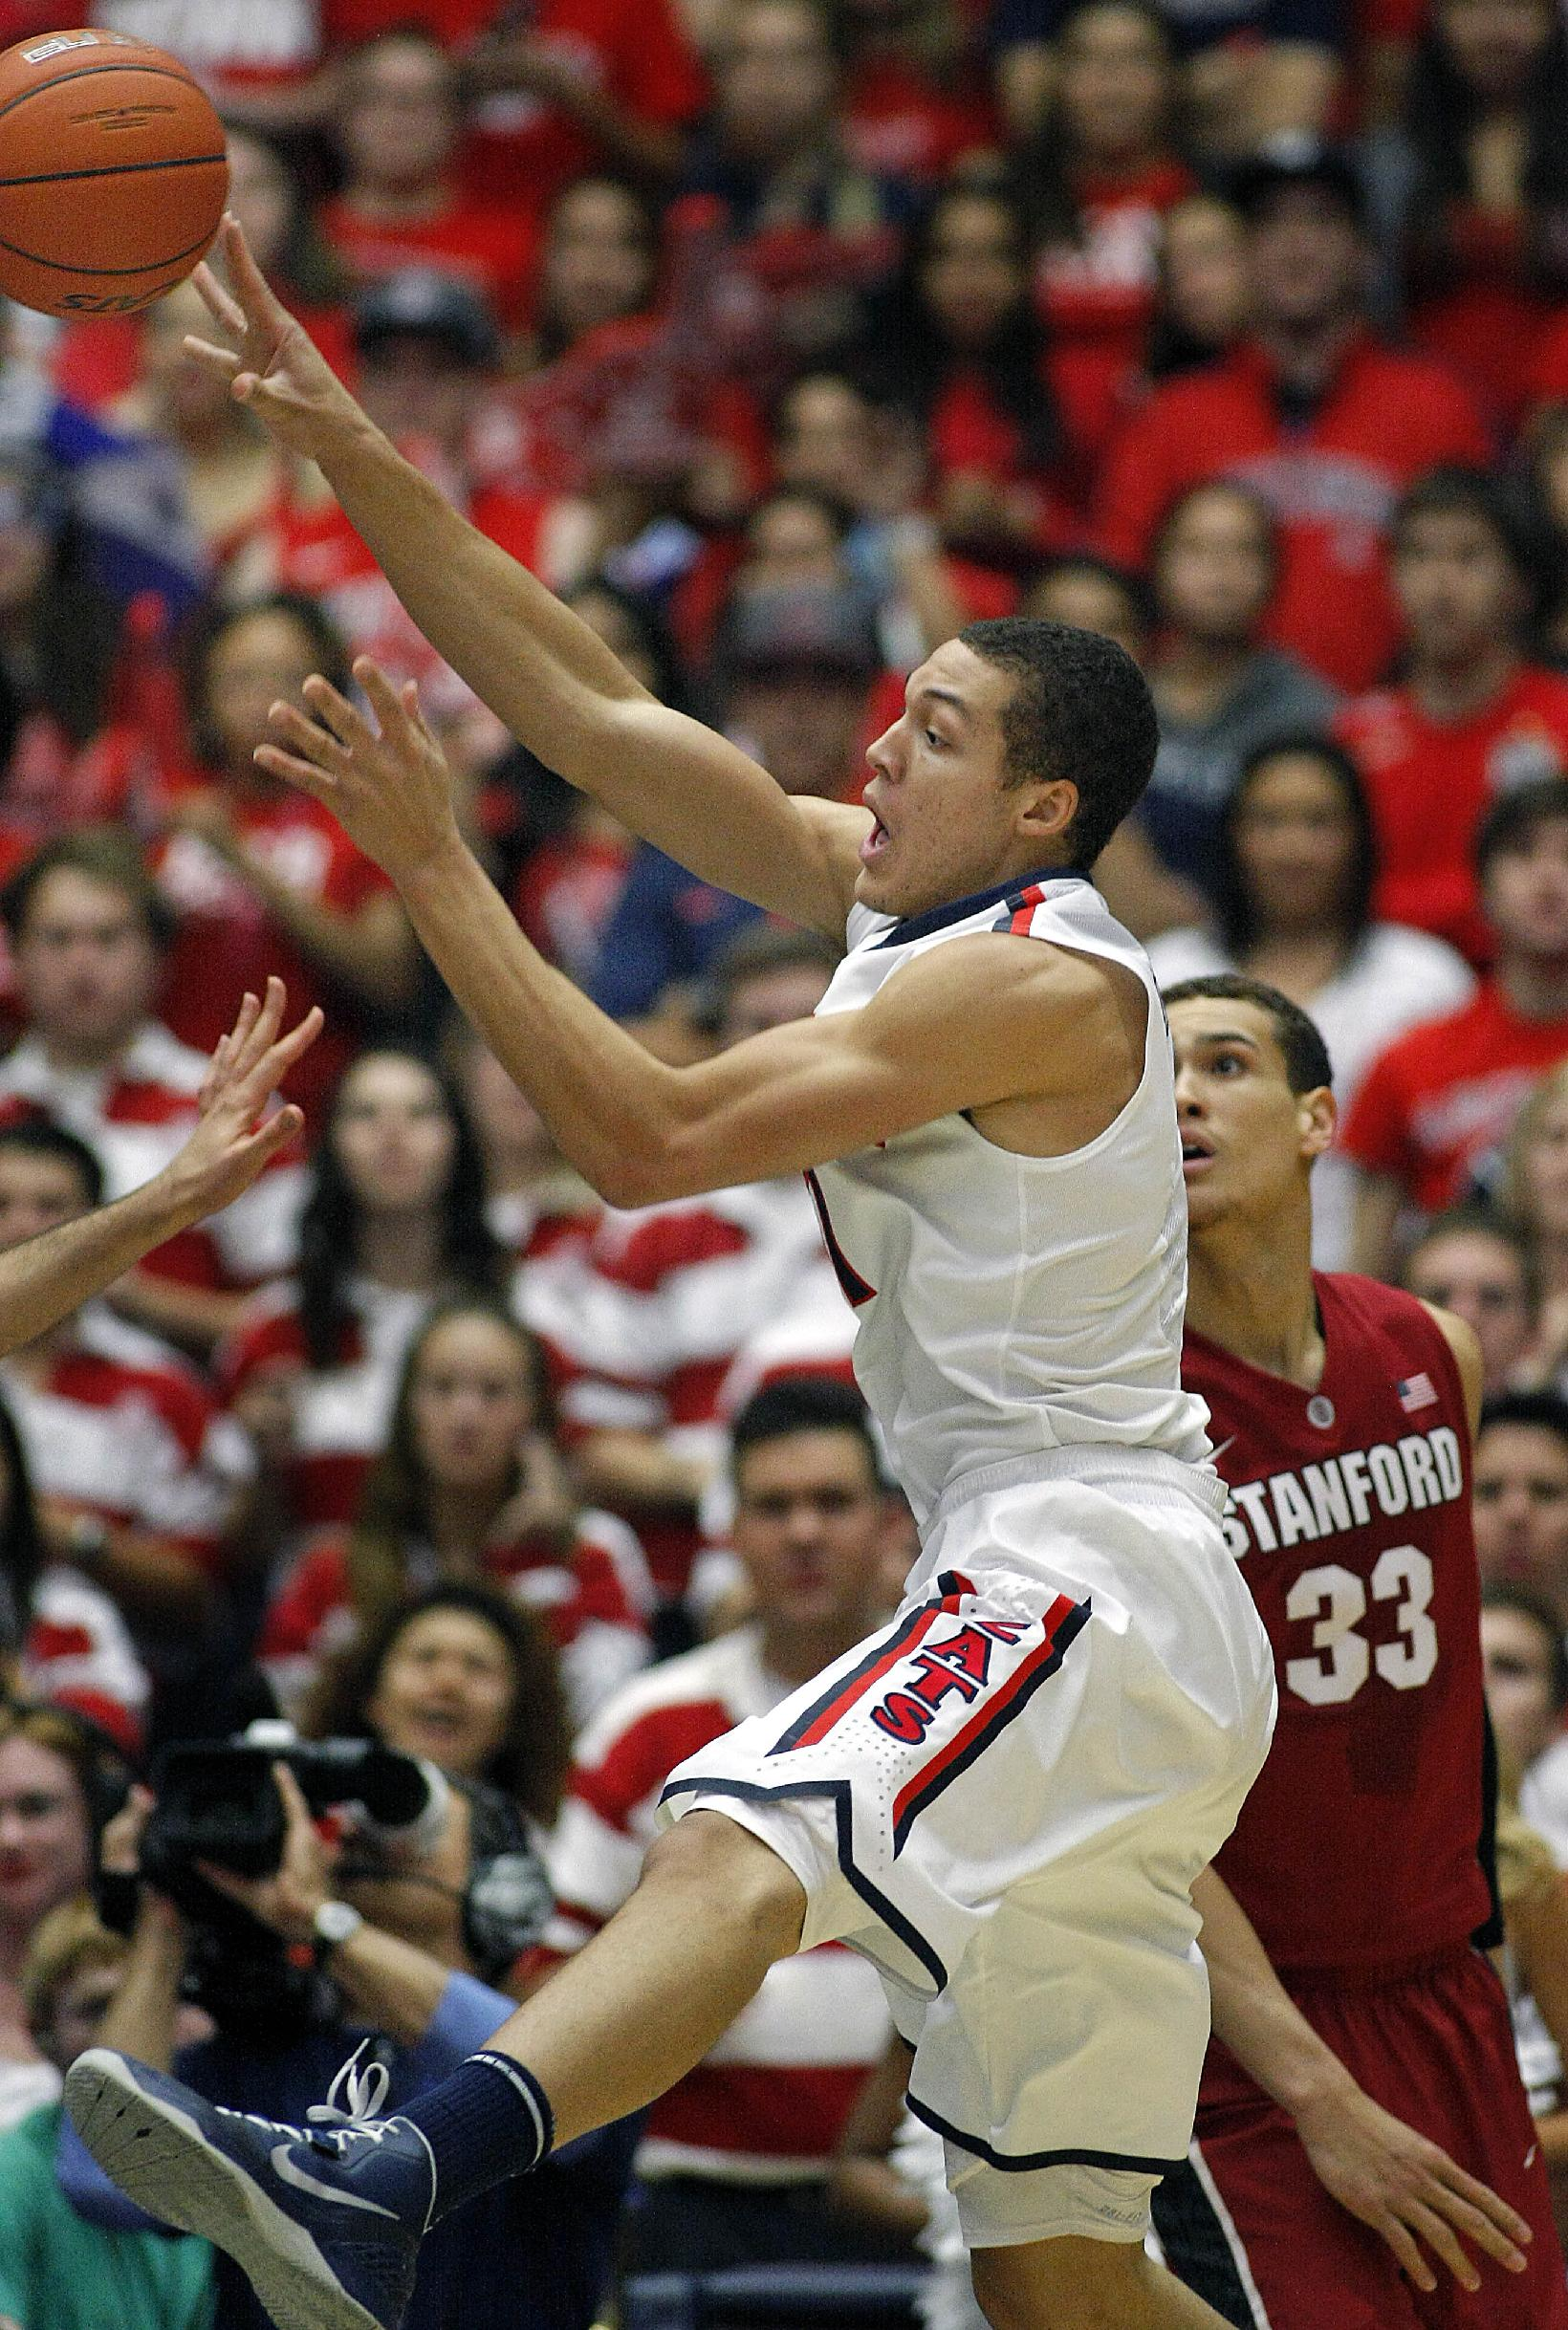 Arizona's Aaron Gordon, center, passes the ball in front of Stanford's Dwight Powell (33) in the first half of an NCAA college basketball game, Sunday, March 2, 2014  in Tucson, Ariz